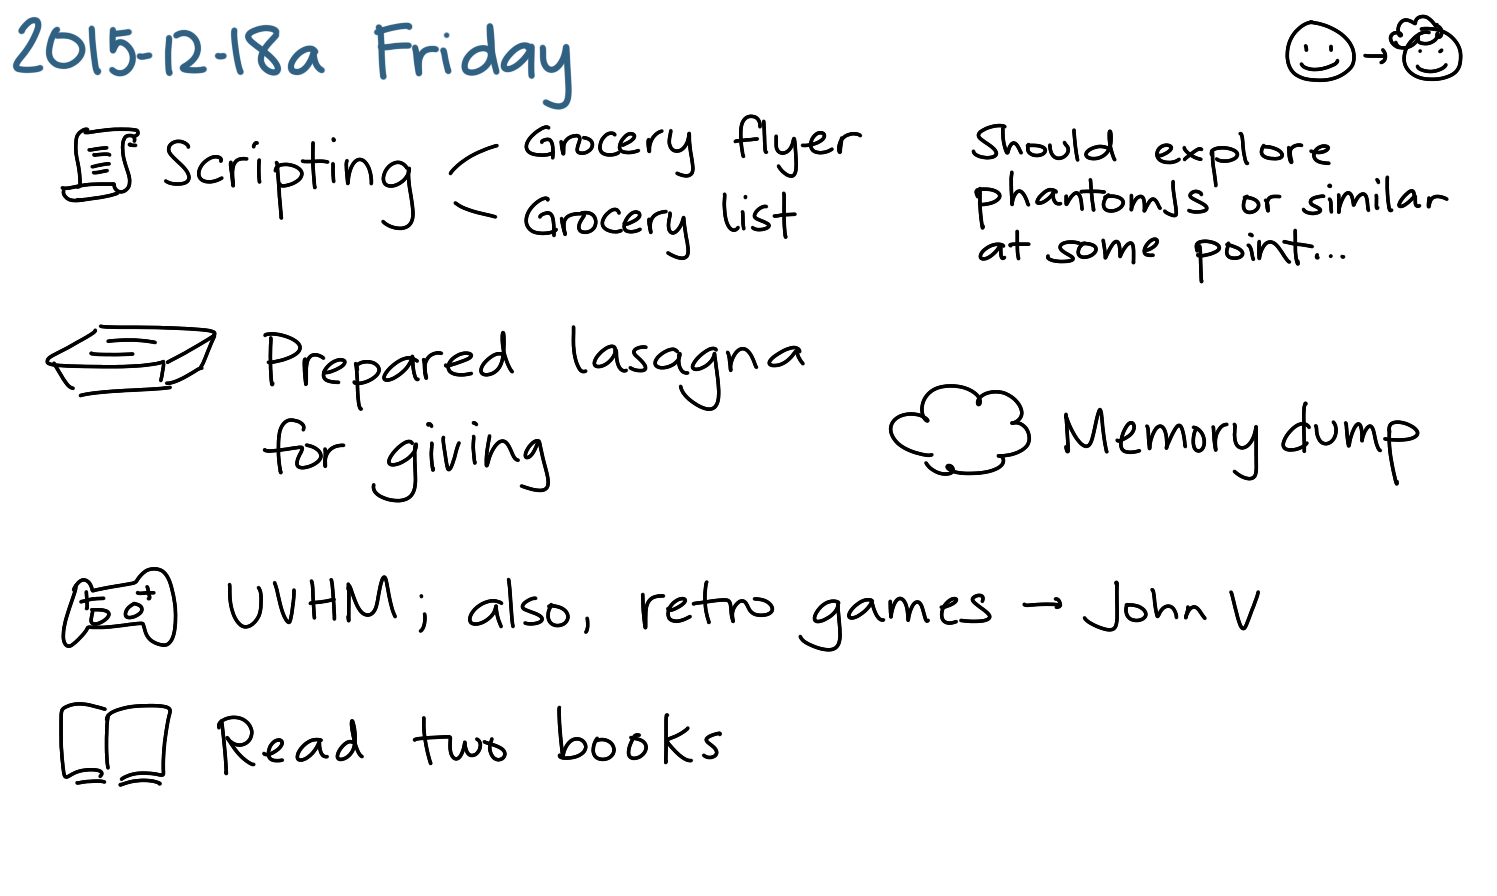 2015-12-18a Friday -- index card #journal.png